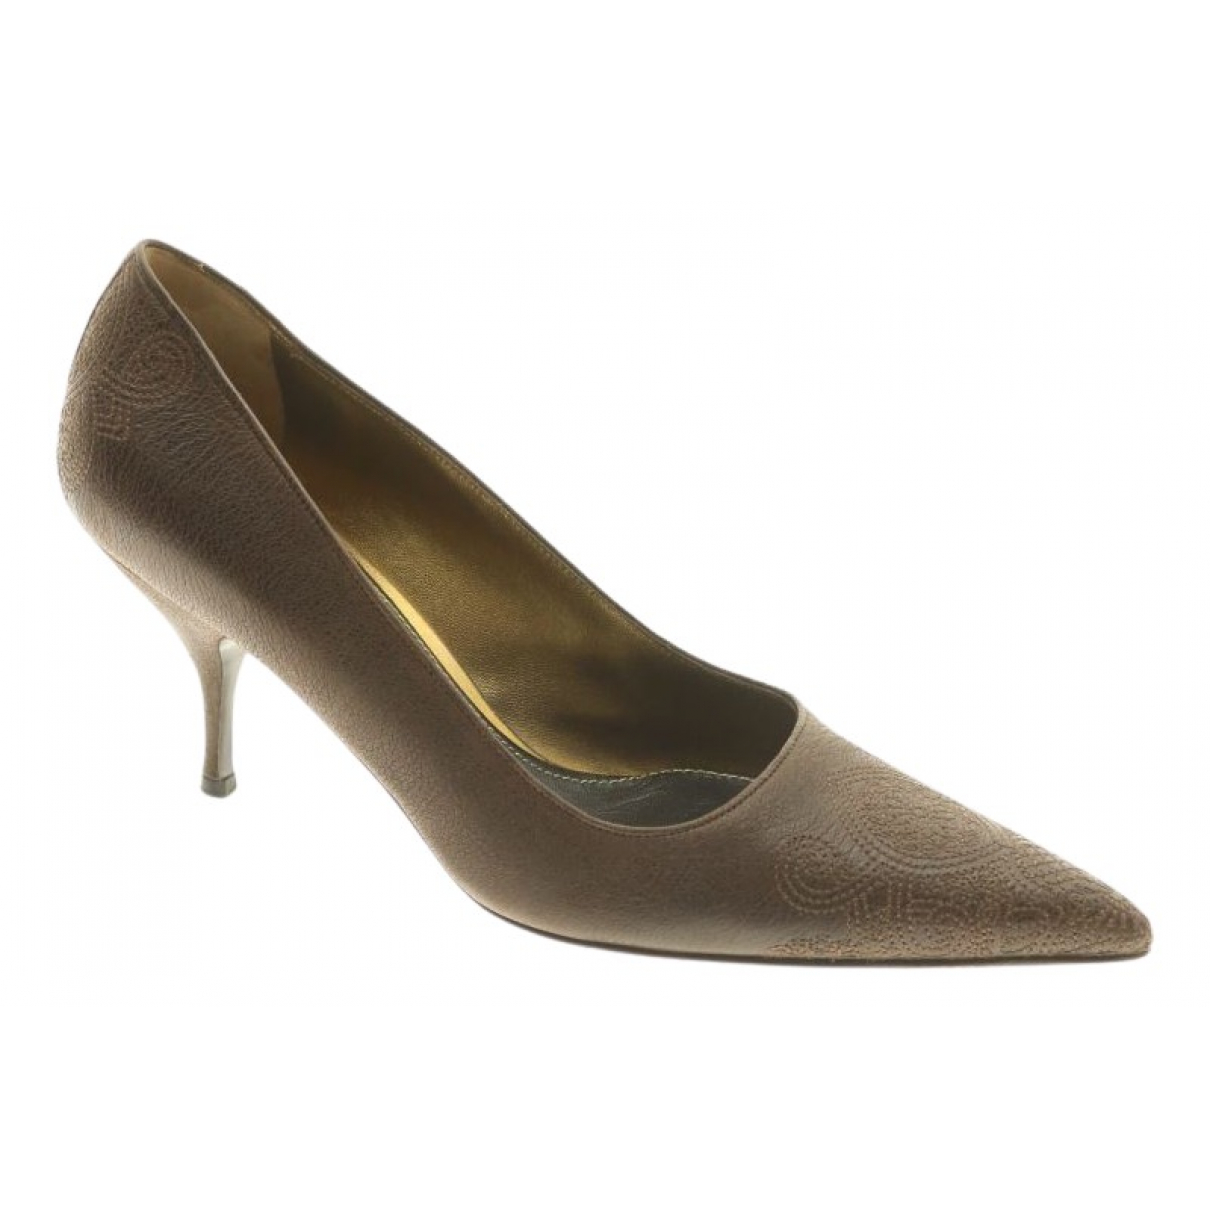 Prada \N Brown Leather Heels for Women 40 EU